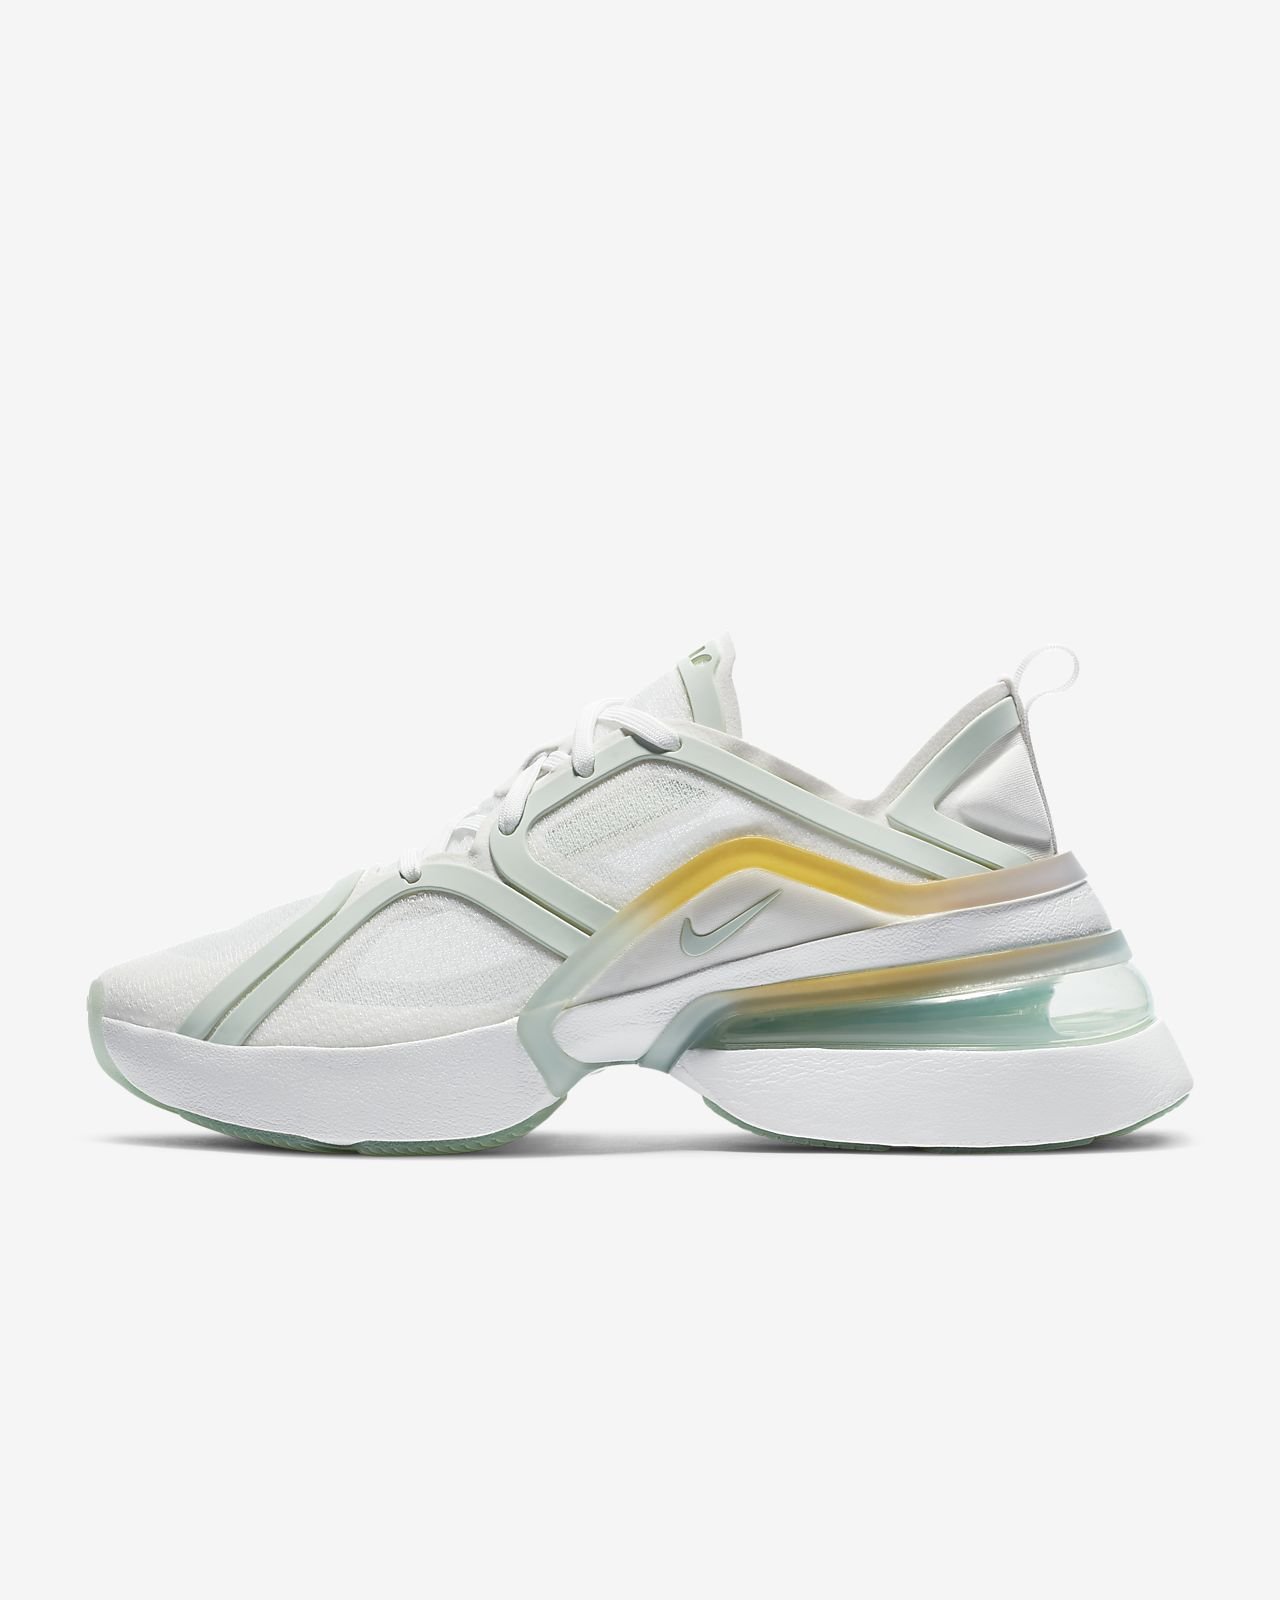 Nike Air Max 270 XX Damenschuh